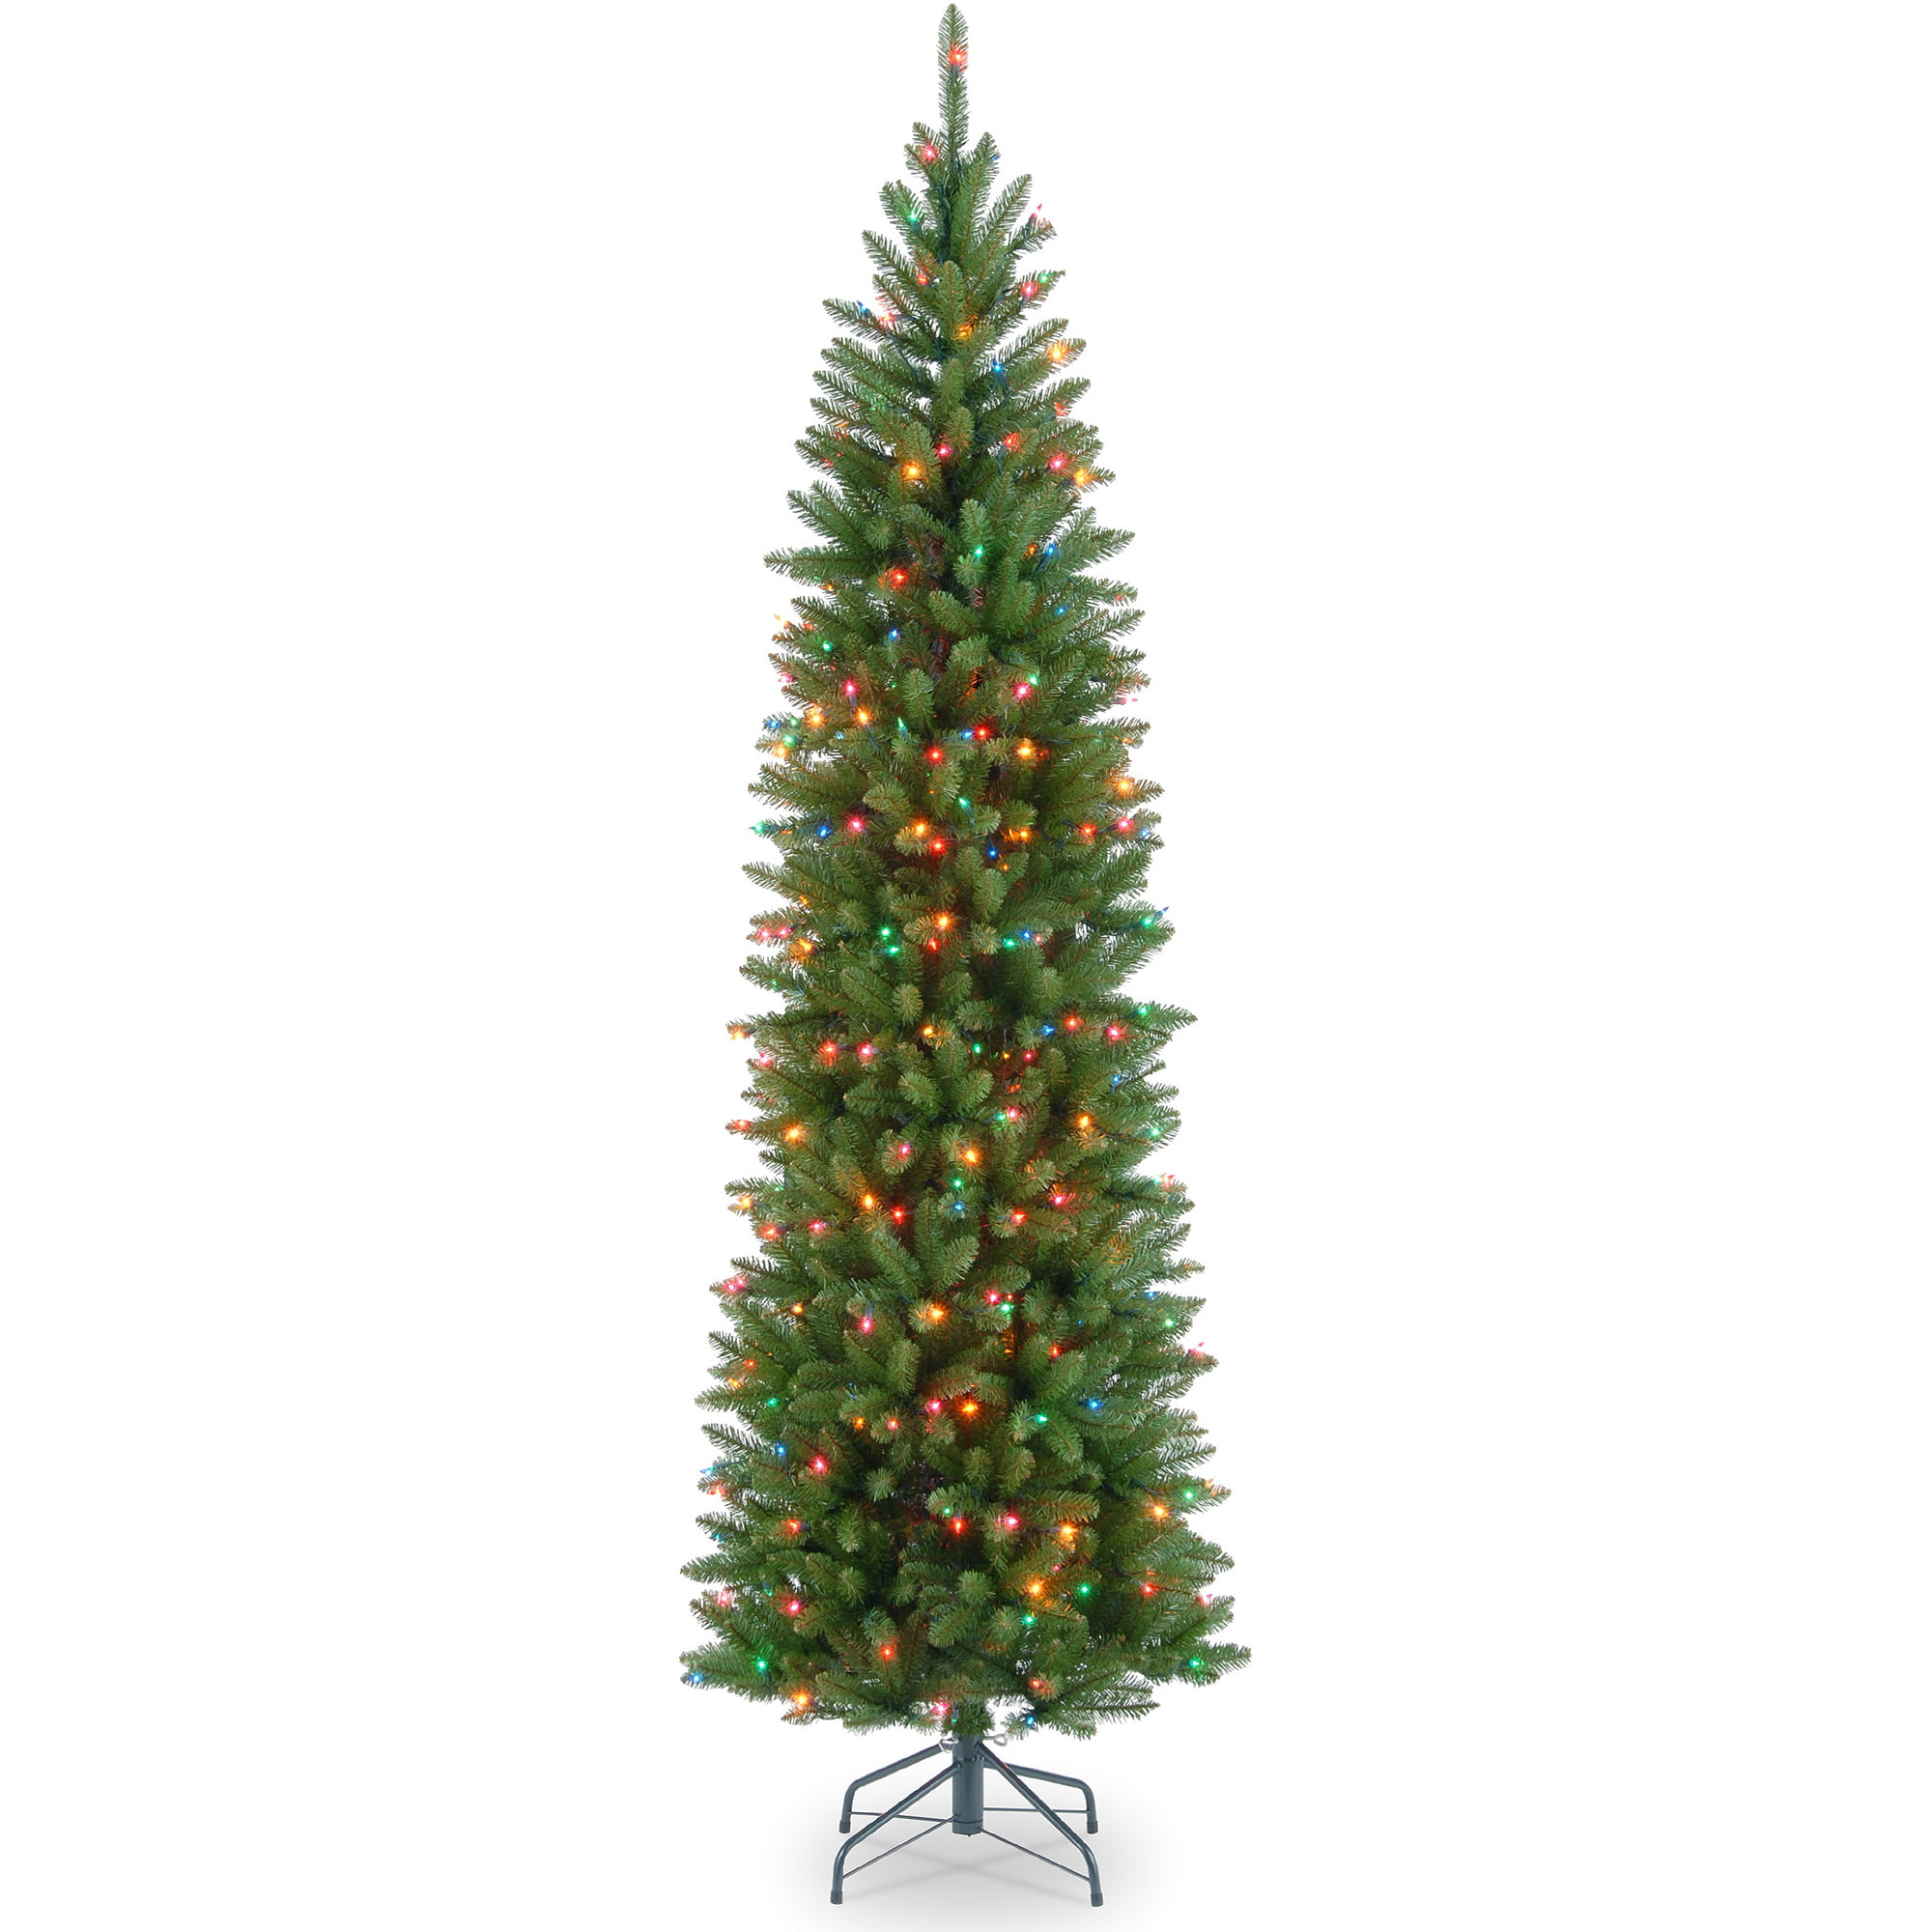 Chistmas Trees: Narrow Christmas Tree Prelit 6.5' Slim Pencil Lighted Faux